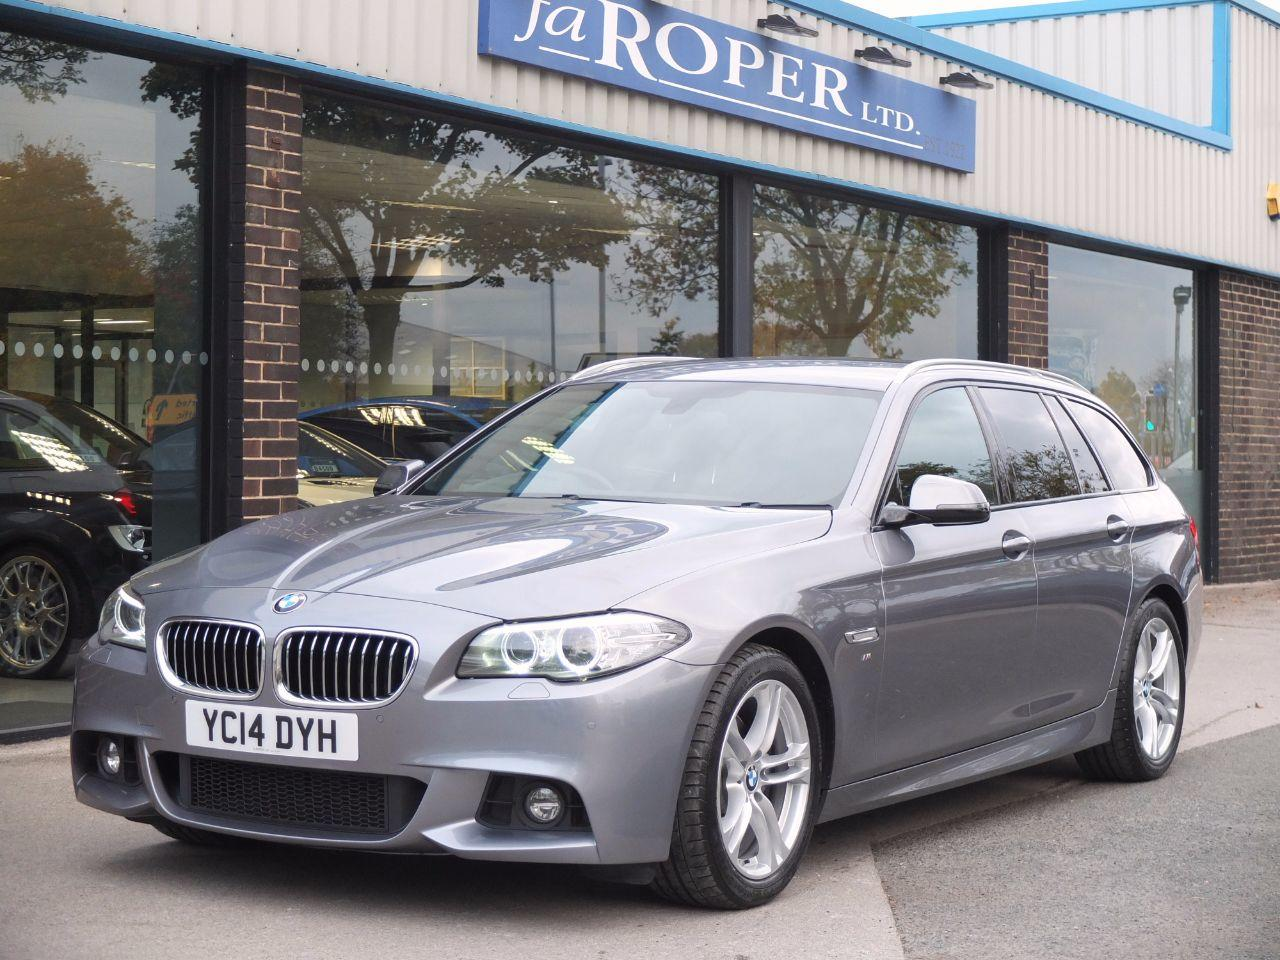 BMW 5 Series 2.0 520d M Sport Touring Auto Estate Diesel Space GreyBMW 5 Series 2.0 520d M Sport Touring Auto Estate Diesel Space Grey at fa Roper Ltd Bradford